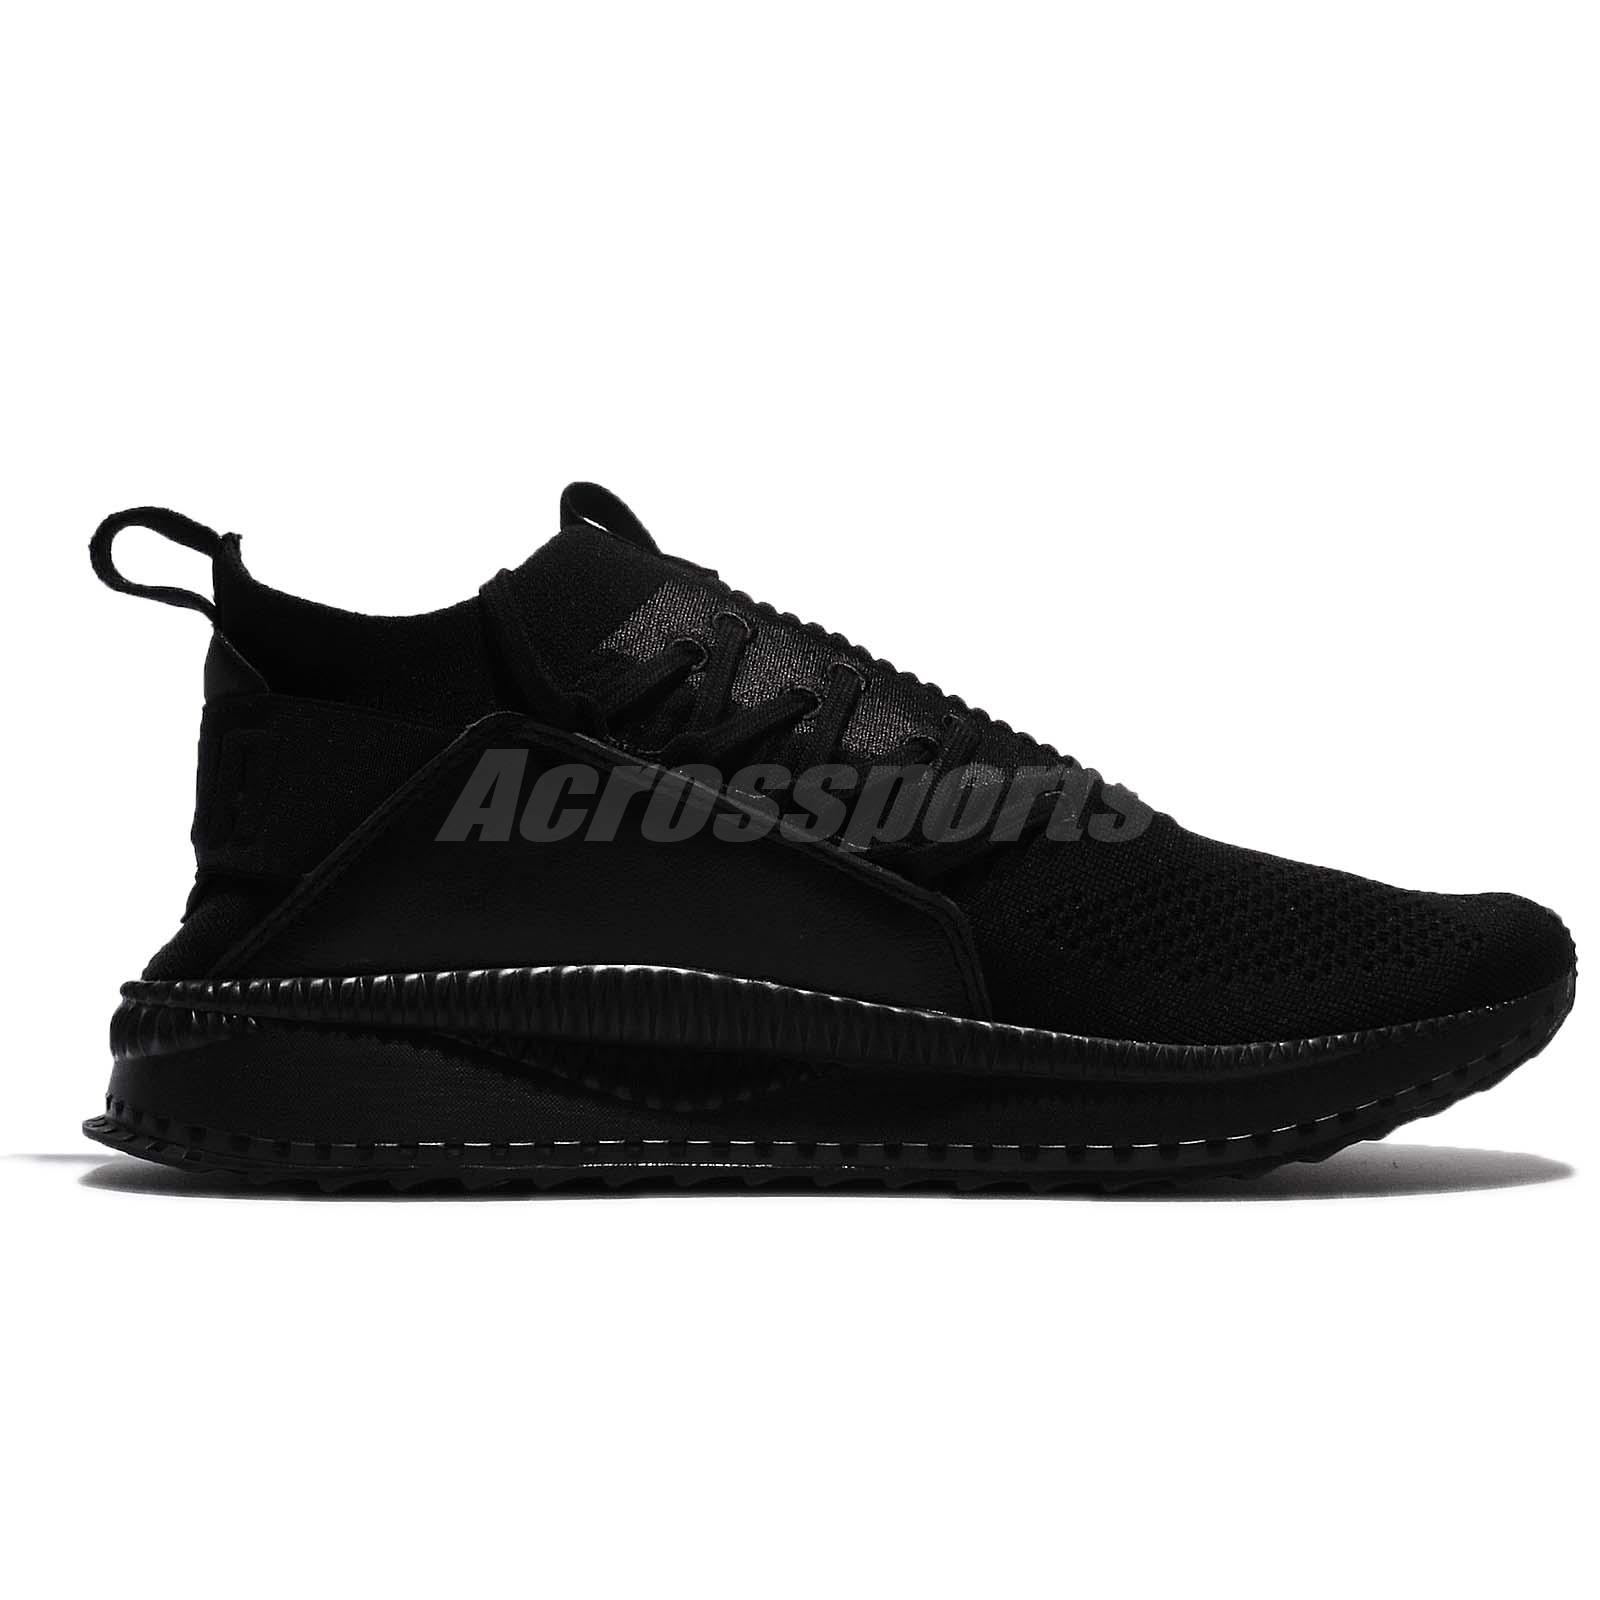 Details about Puma TSUGI Jun Black EvoKnit The Weeknd Men Lifestyle Running  Sneakers 365489-01 1d71e8d4f